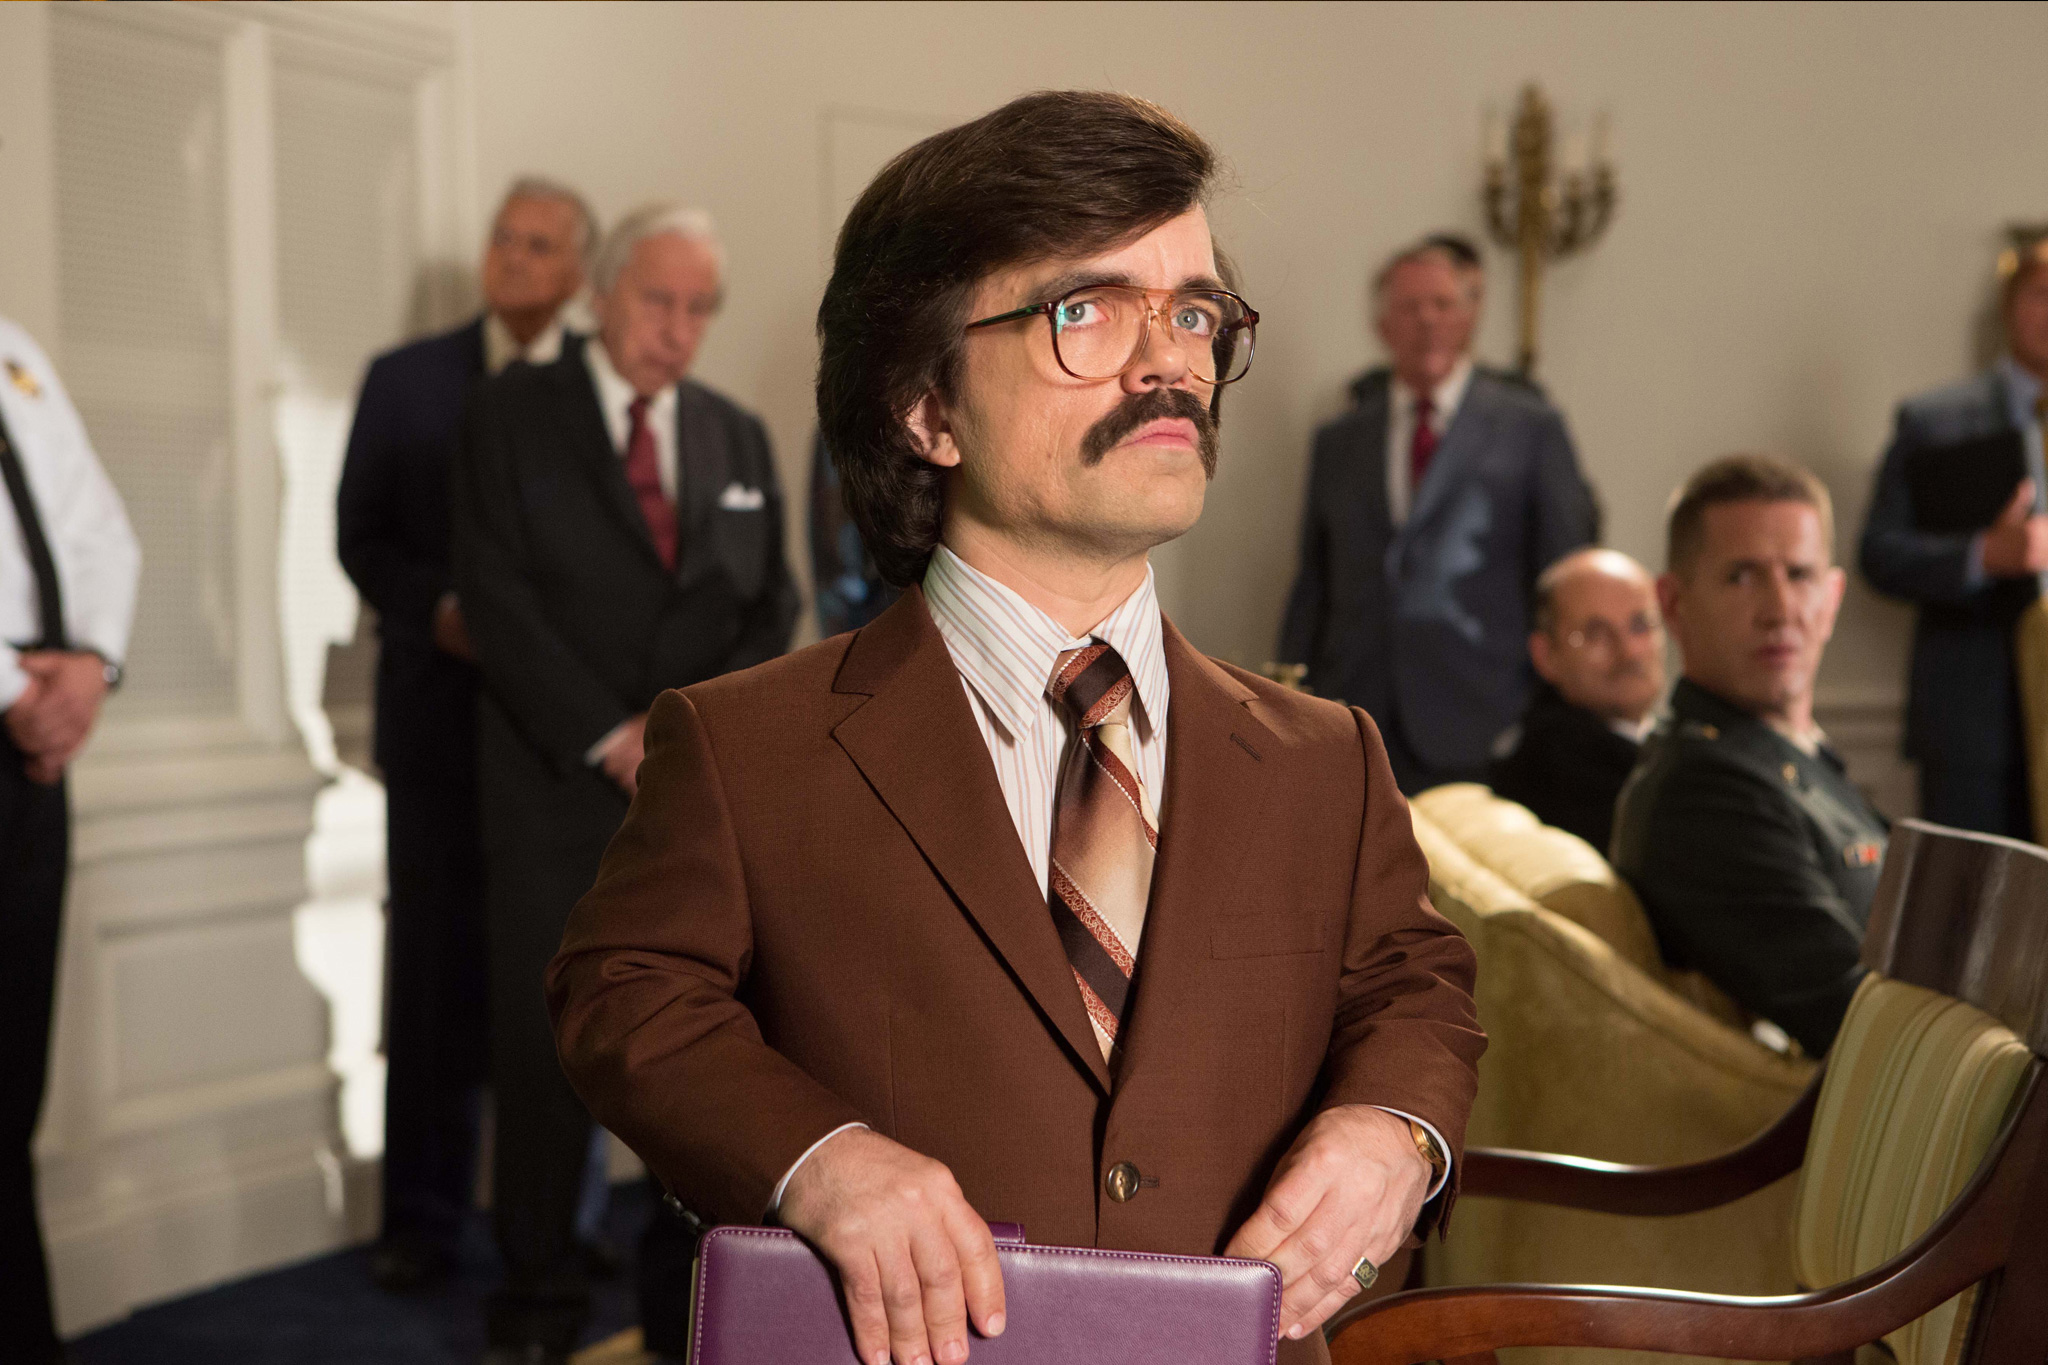 Dr. Bolivar Trask has no empathy for mutants.